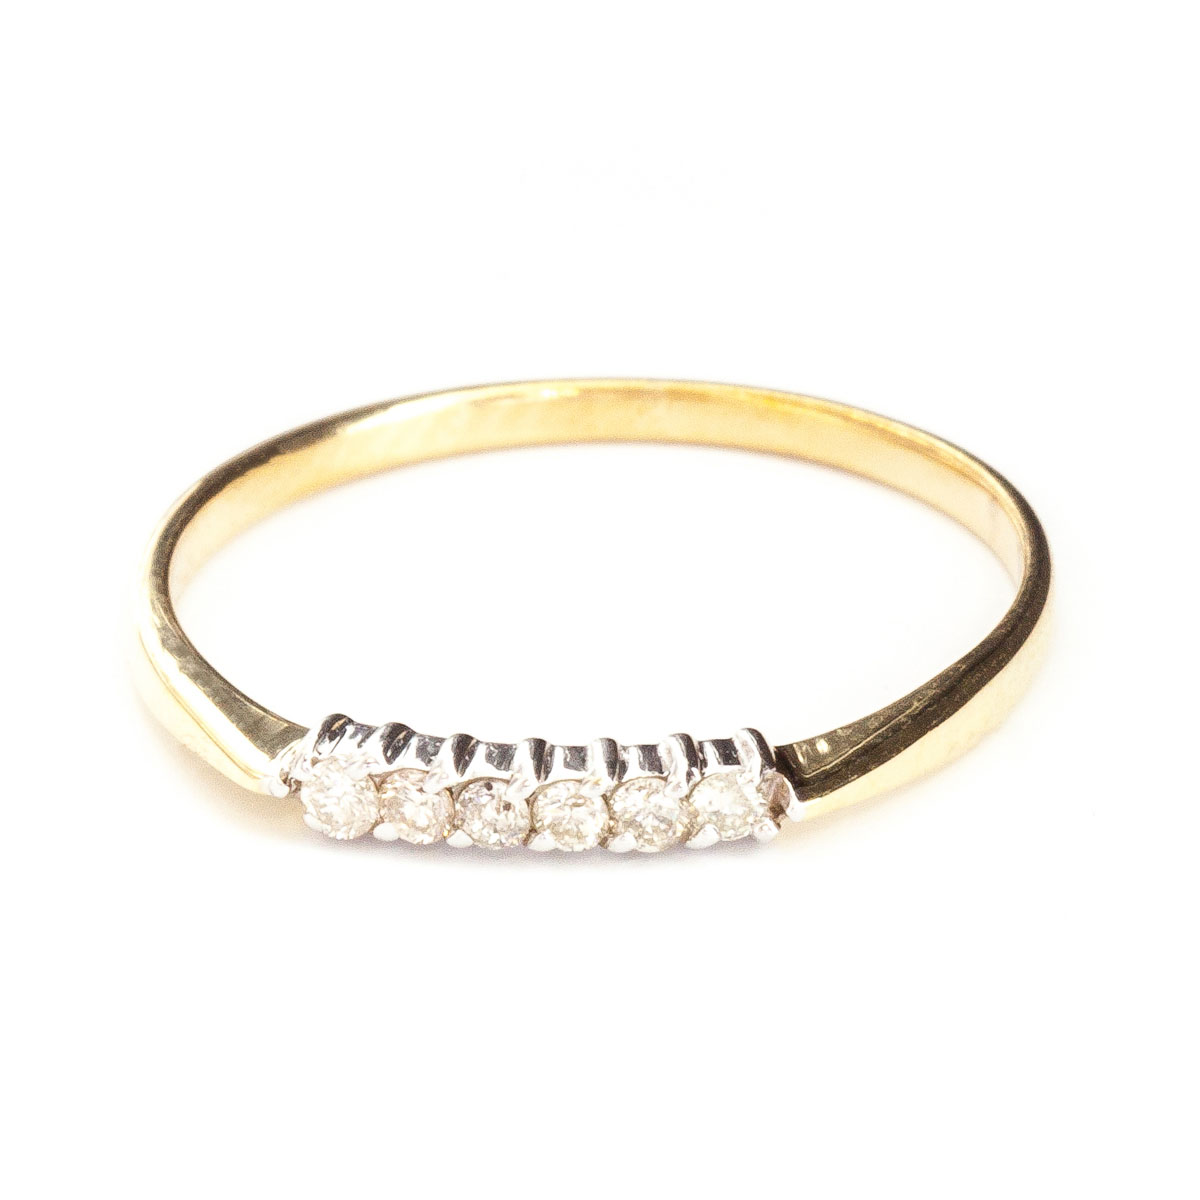 Round Cut Diamond Ring 0.1 ctw in 9ct Gold